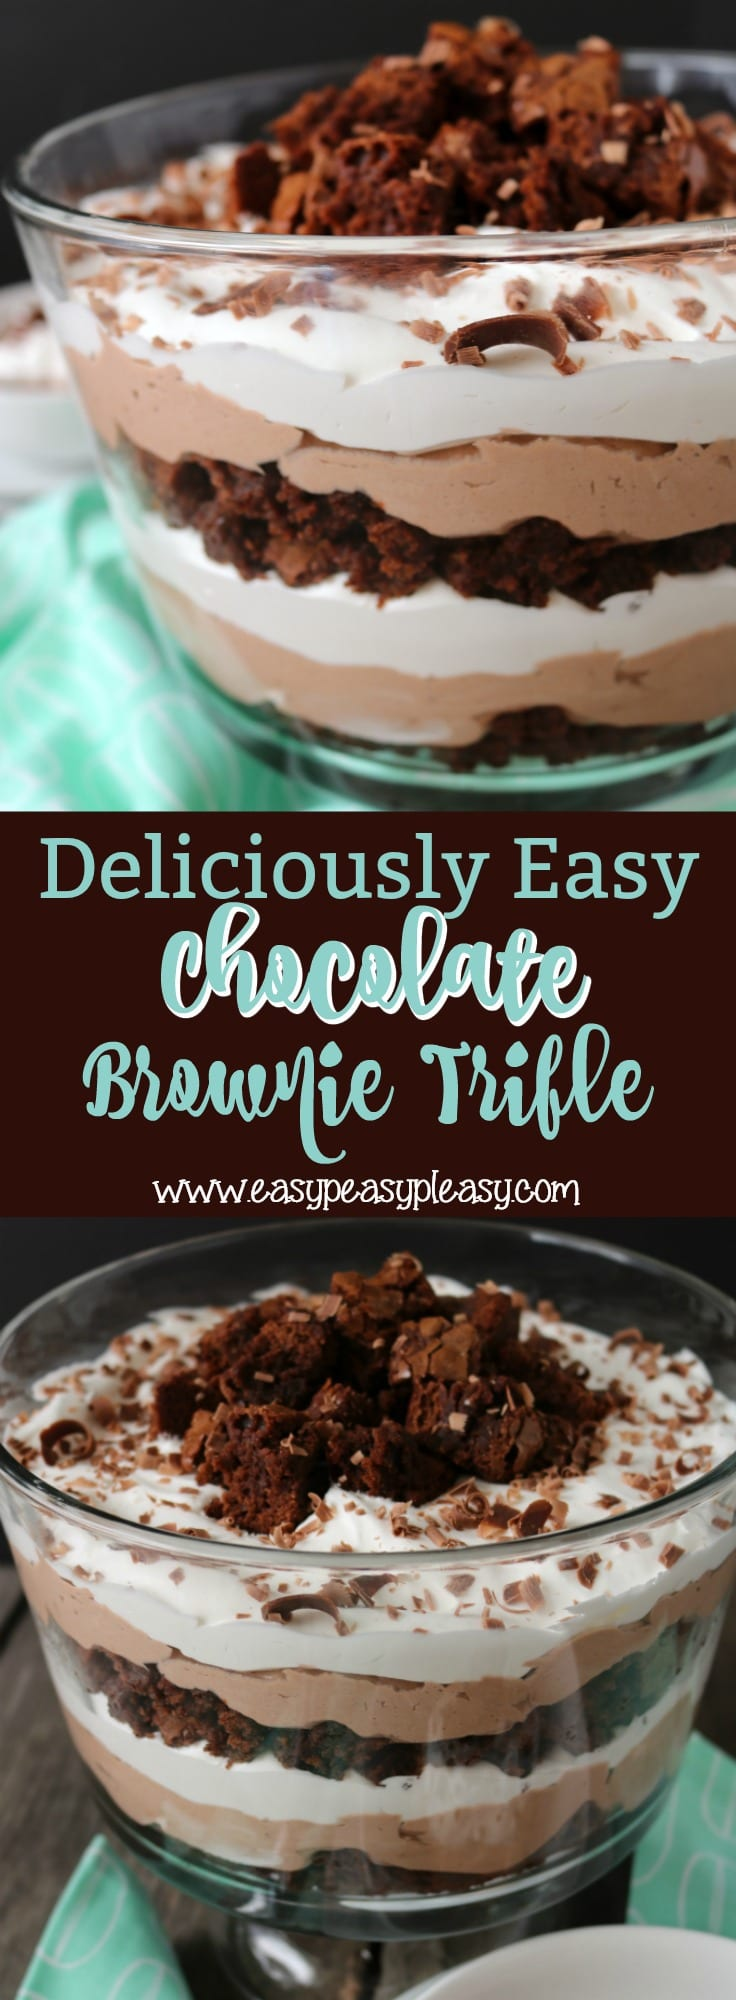 Deliciously Easy Chocolate Brownie Trifle will make you a hit with family and friends!